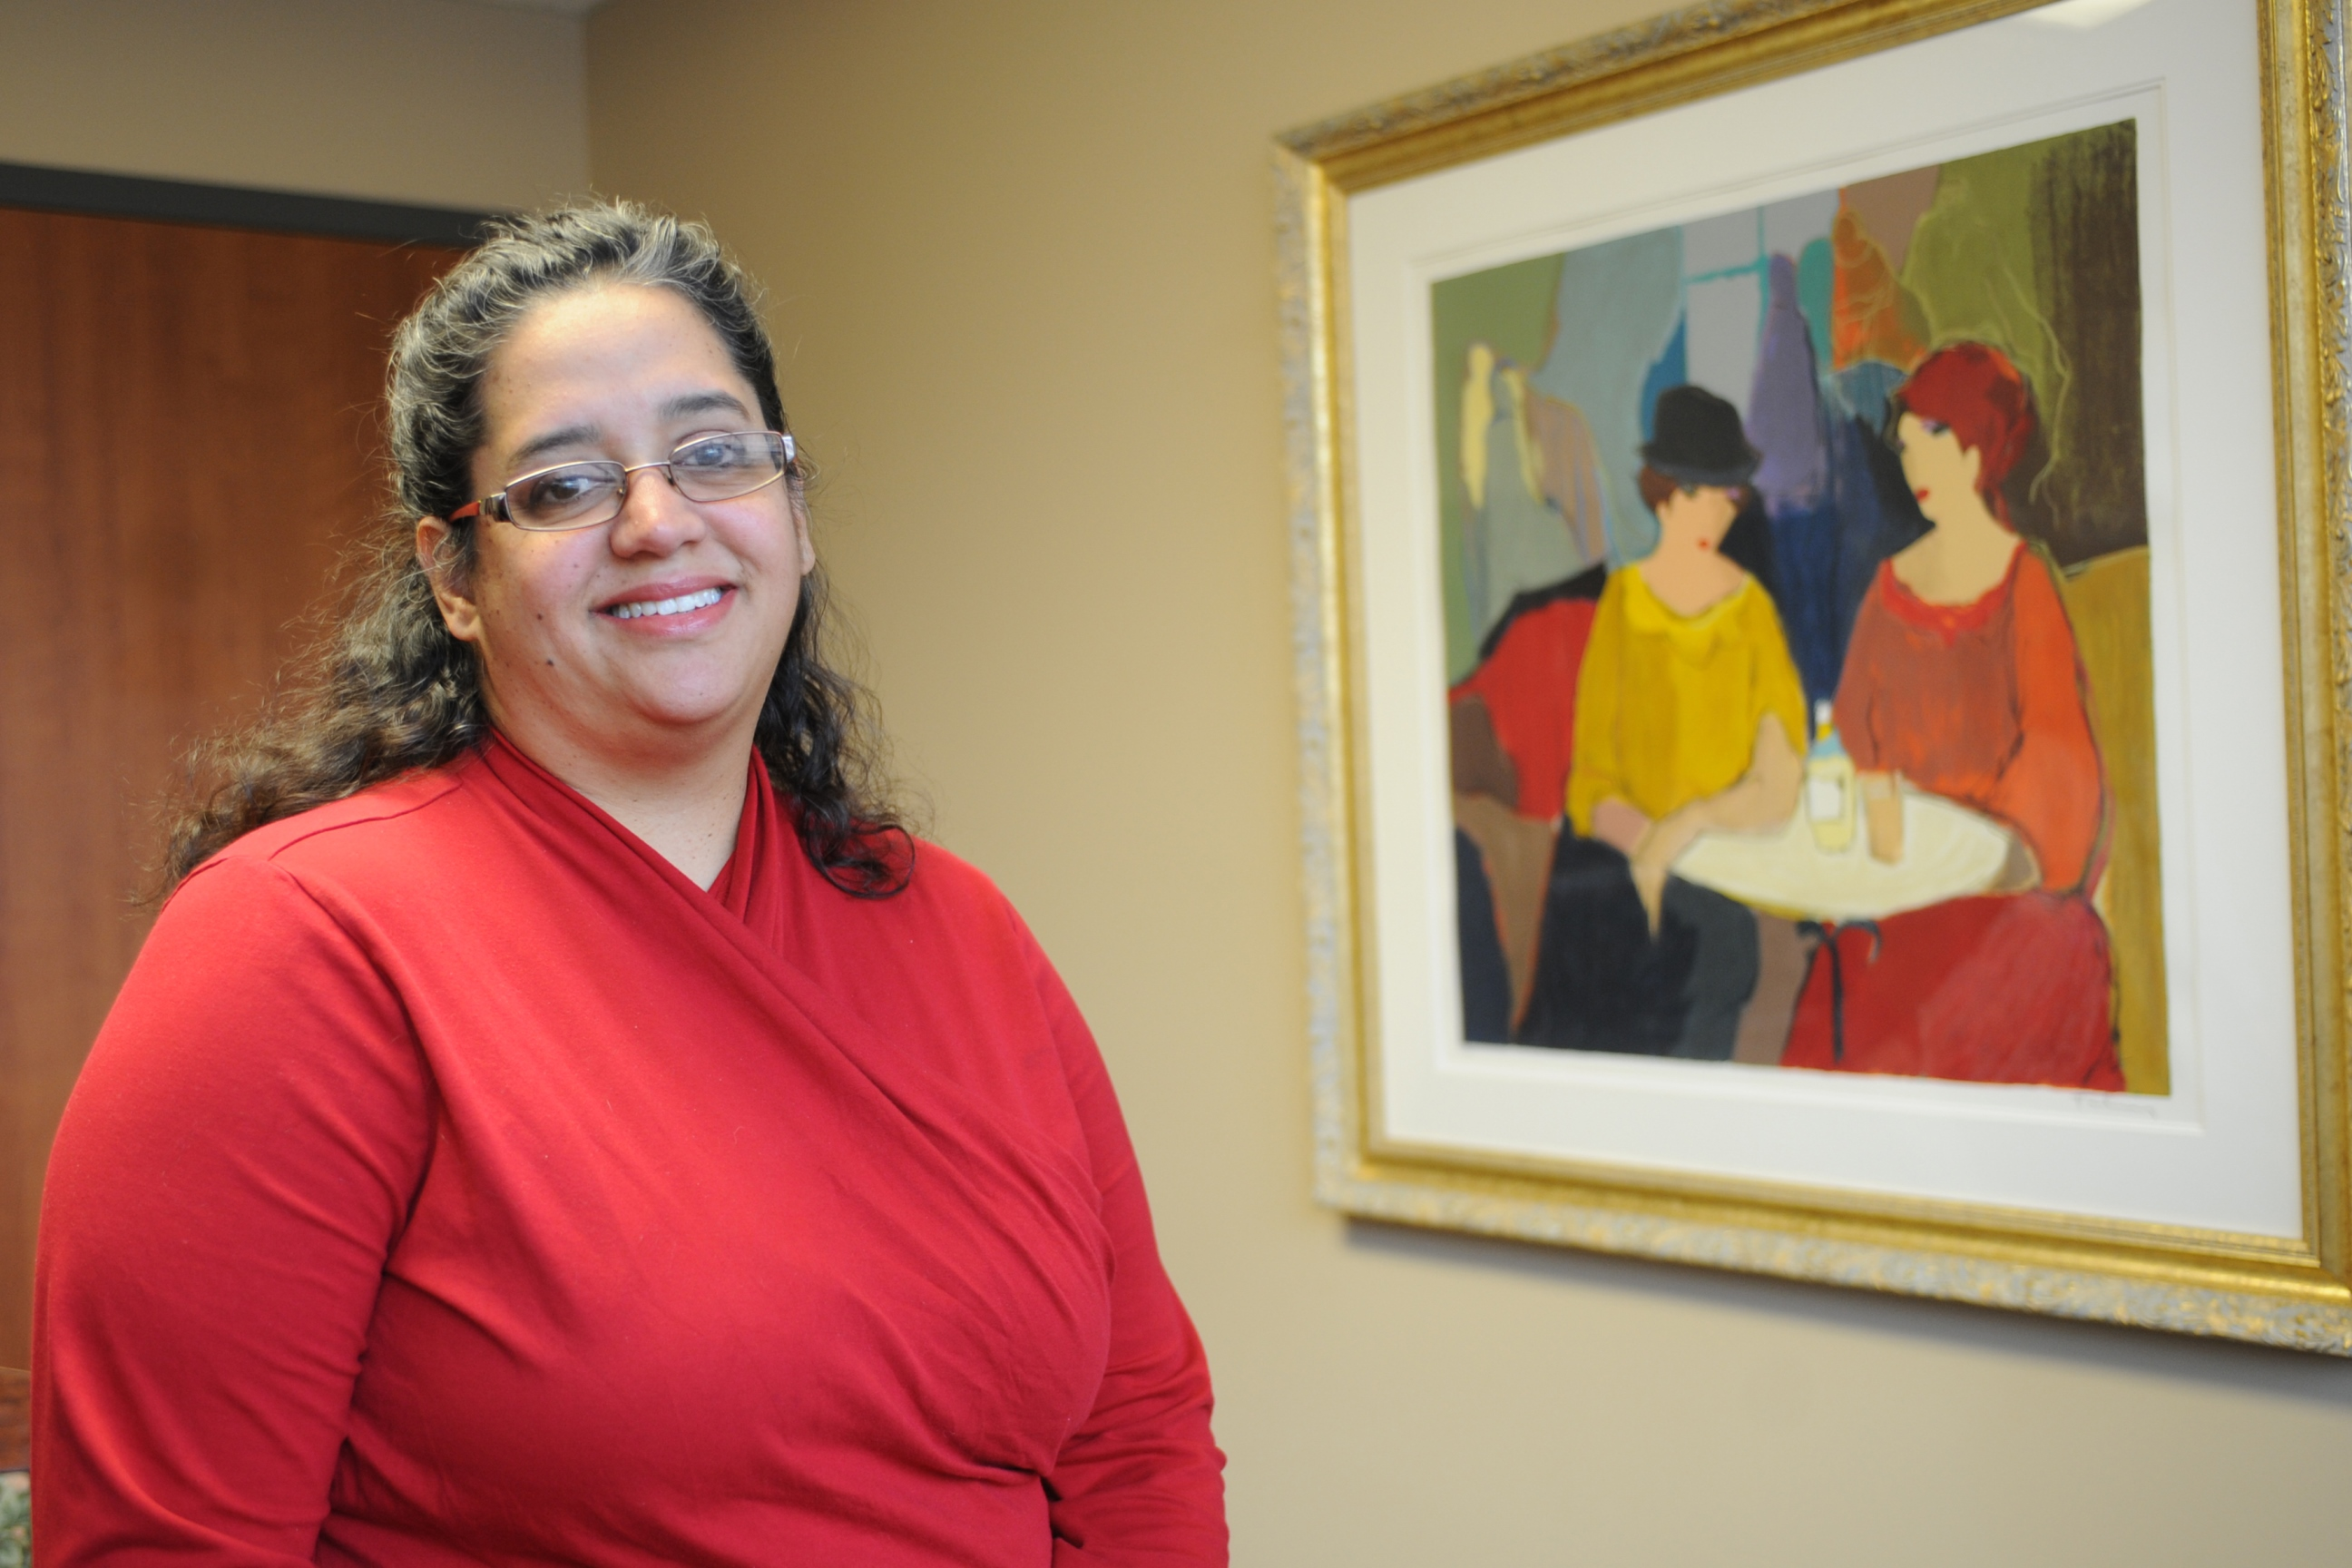 Certified nurse midwife to discuss hormones' role in labor, childbirth